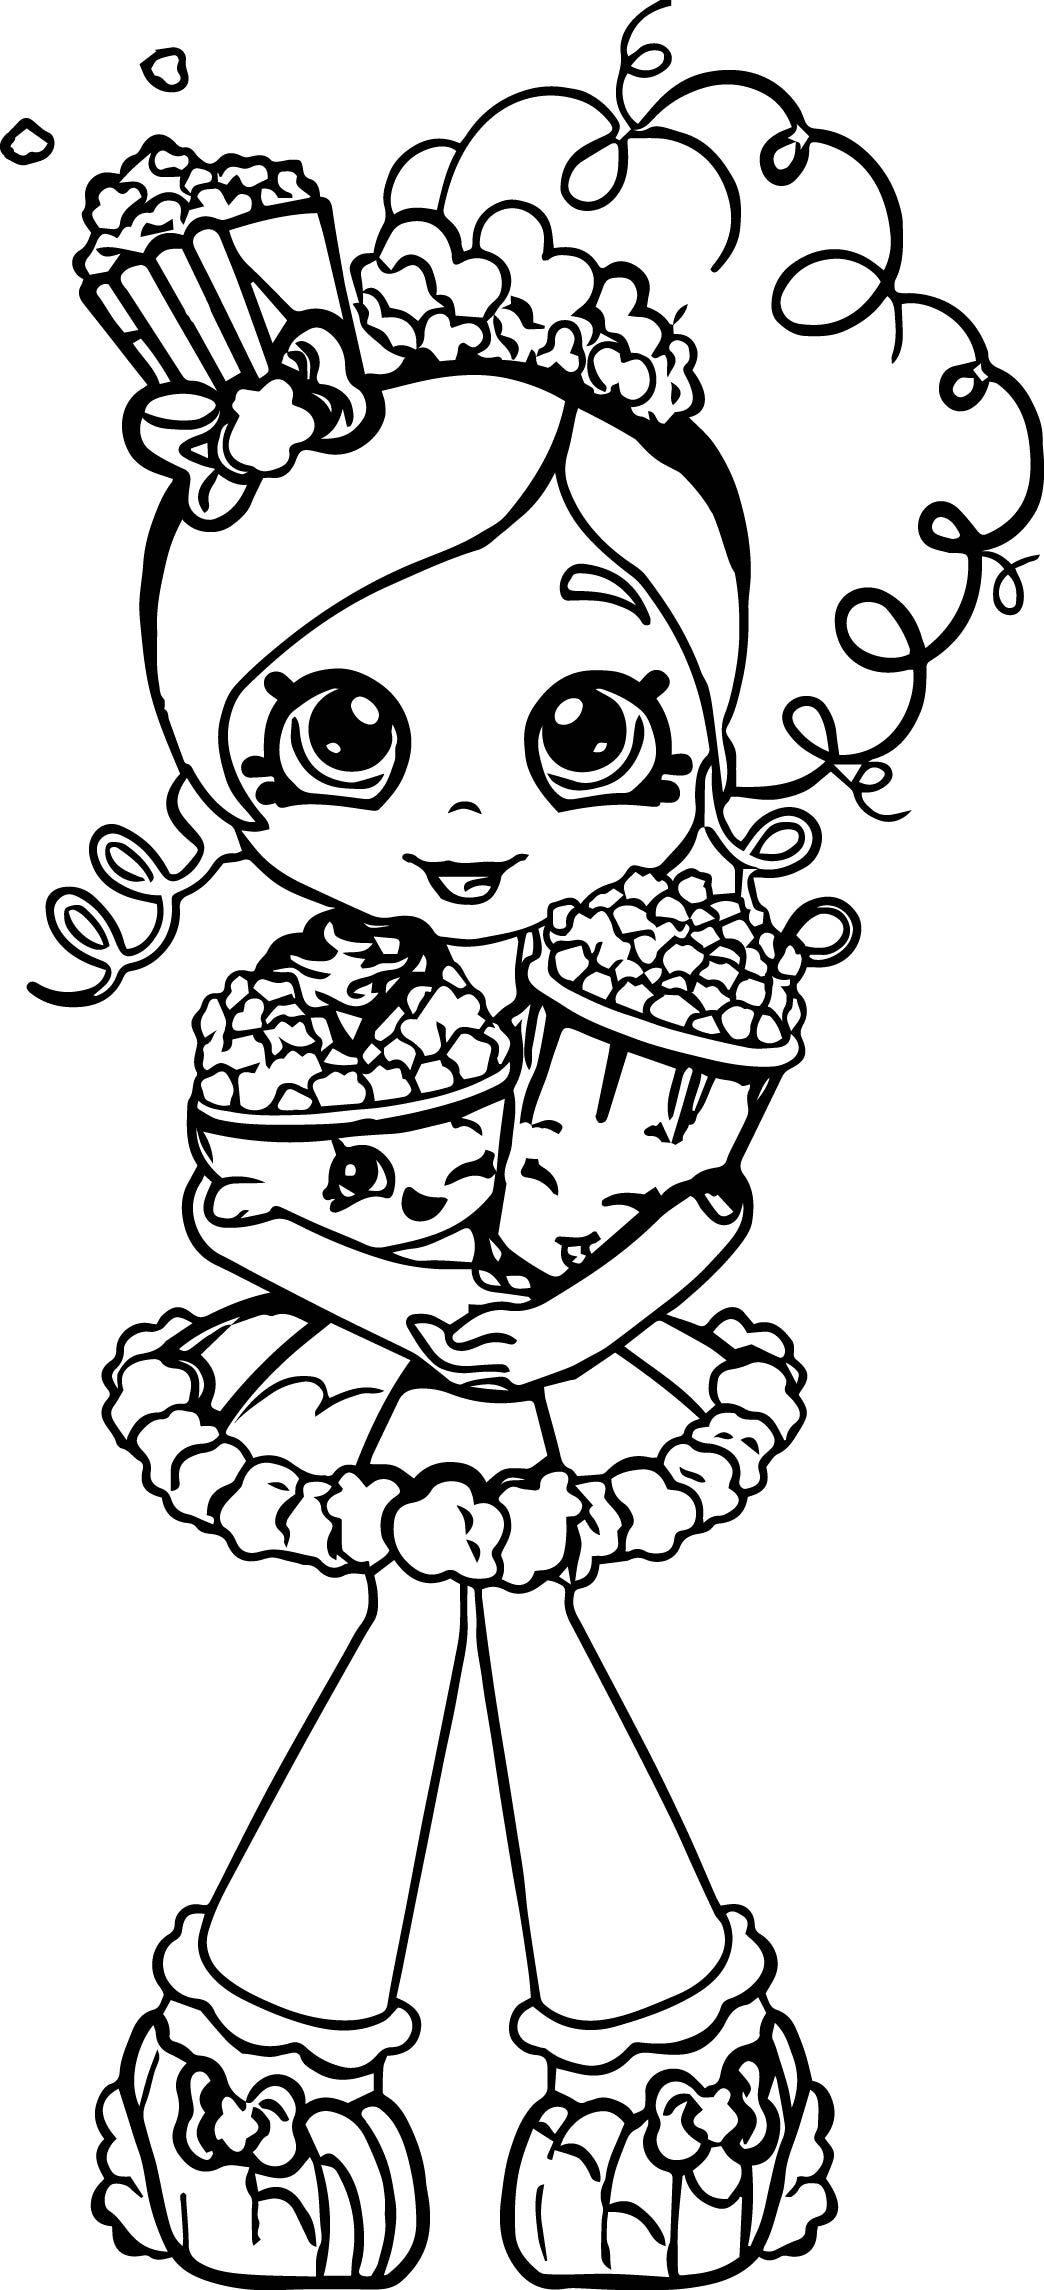 Coloring games of shopkins - Popcorn Shopkins Girl Coloring Page